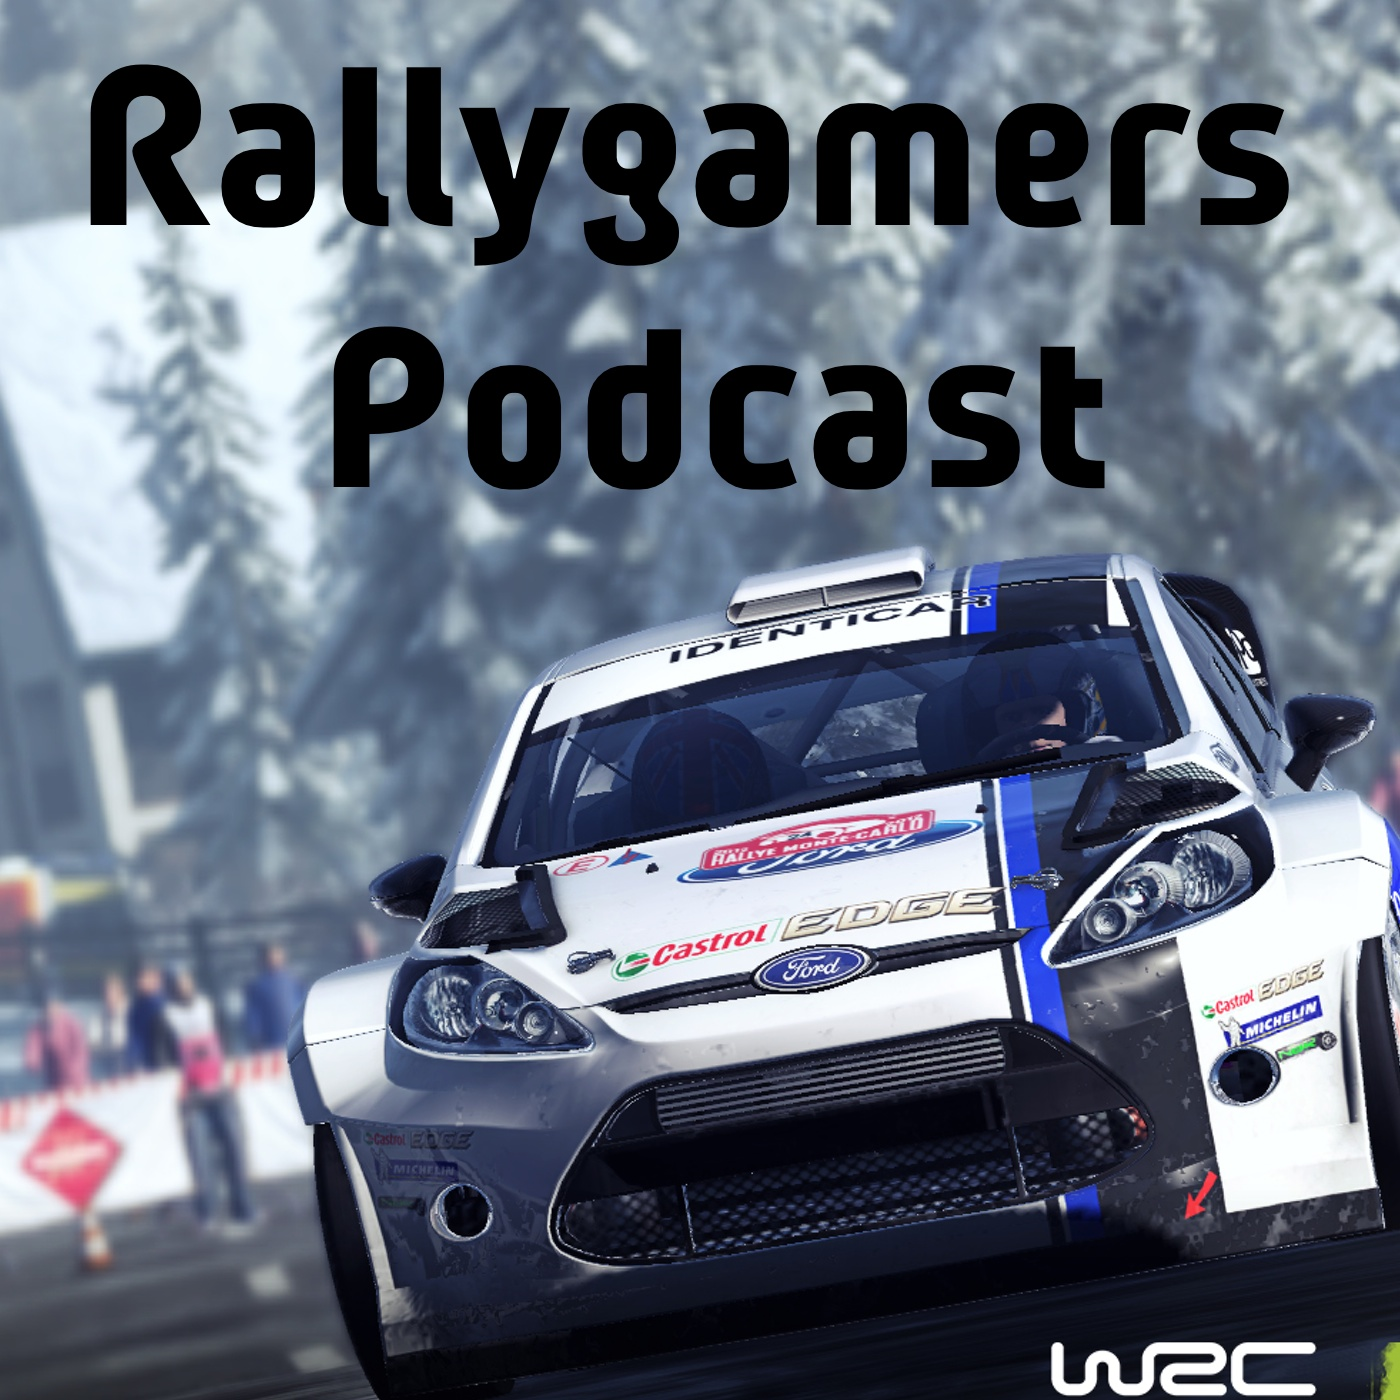 Rallygamers Podcast